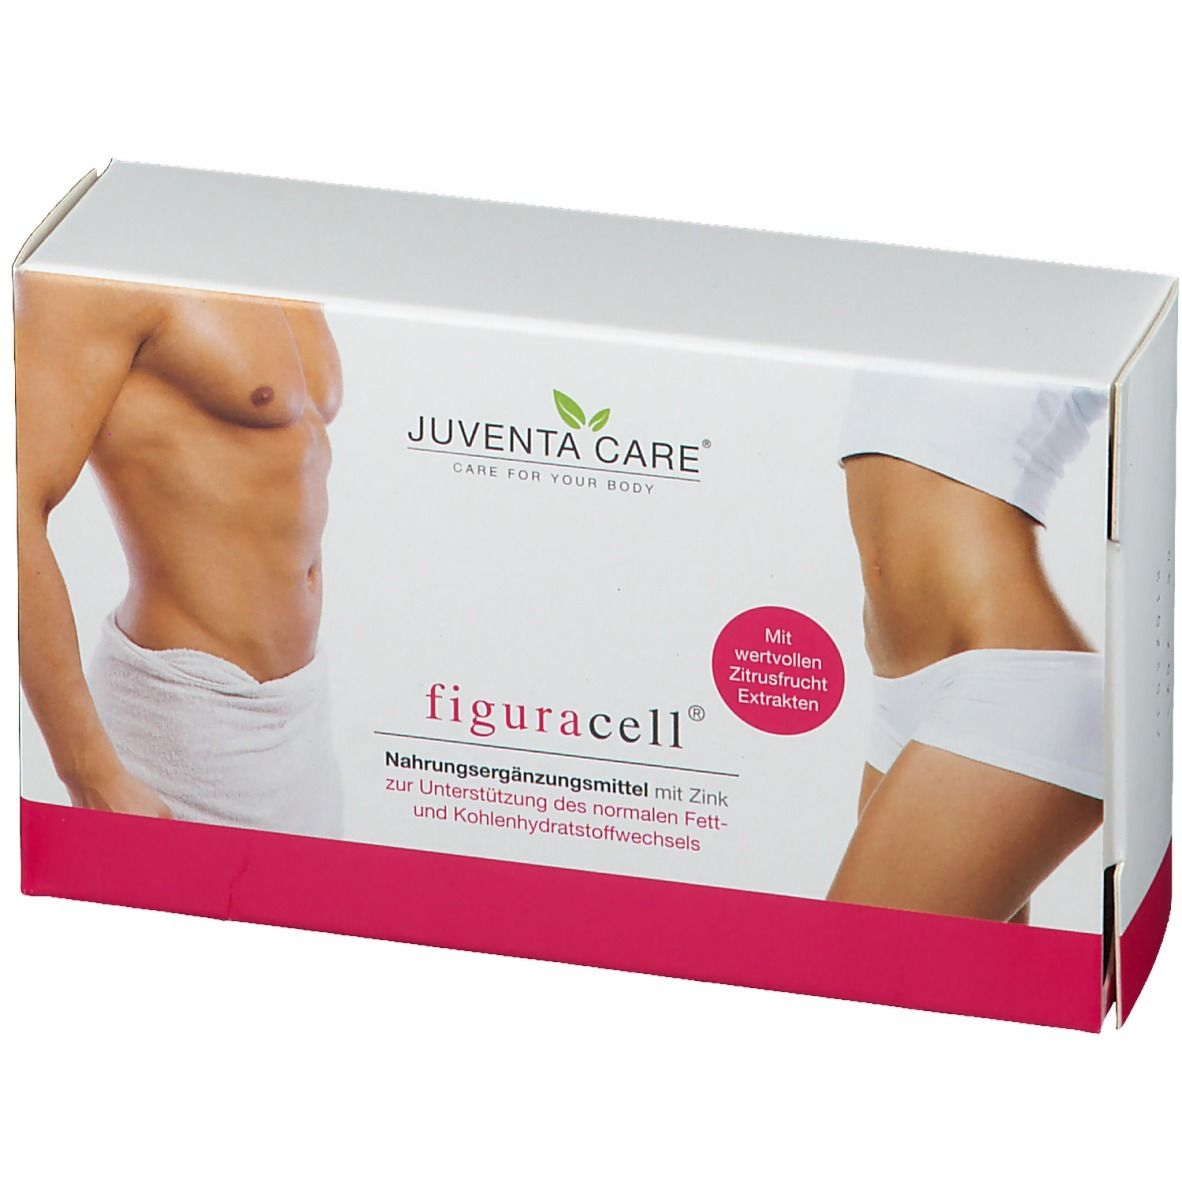 Juventa Care® figuracell®